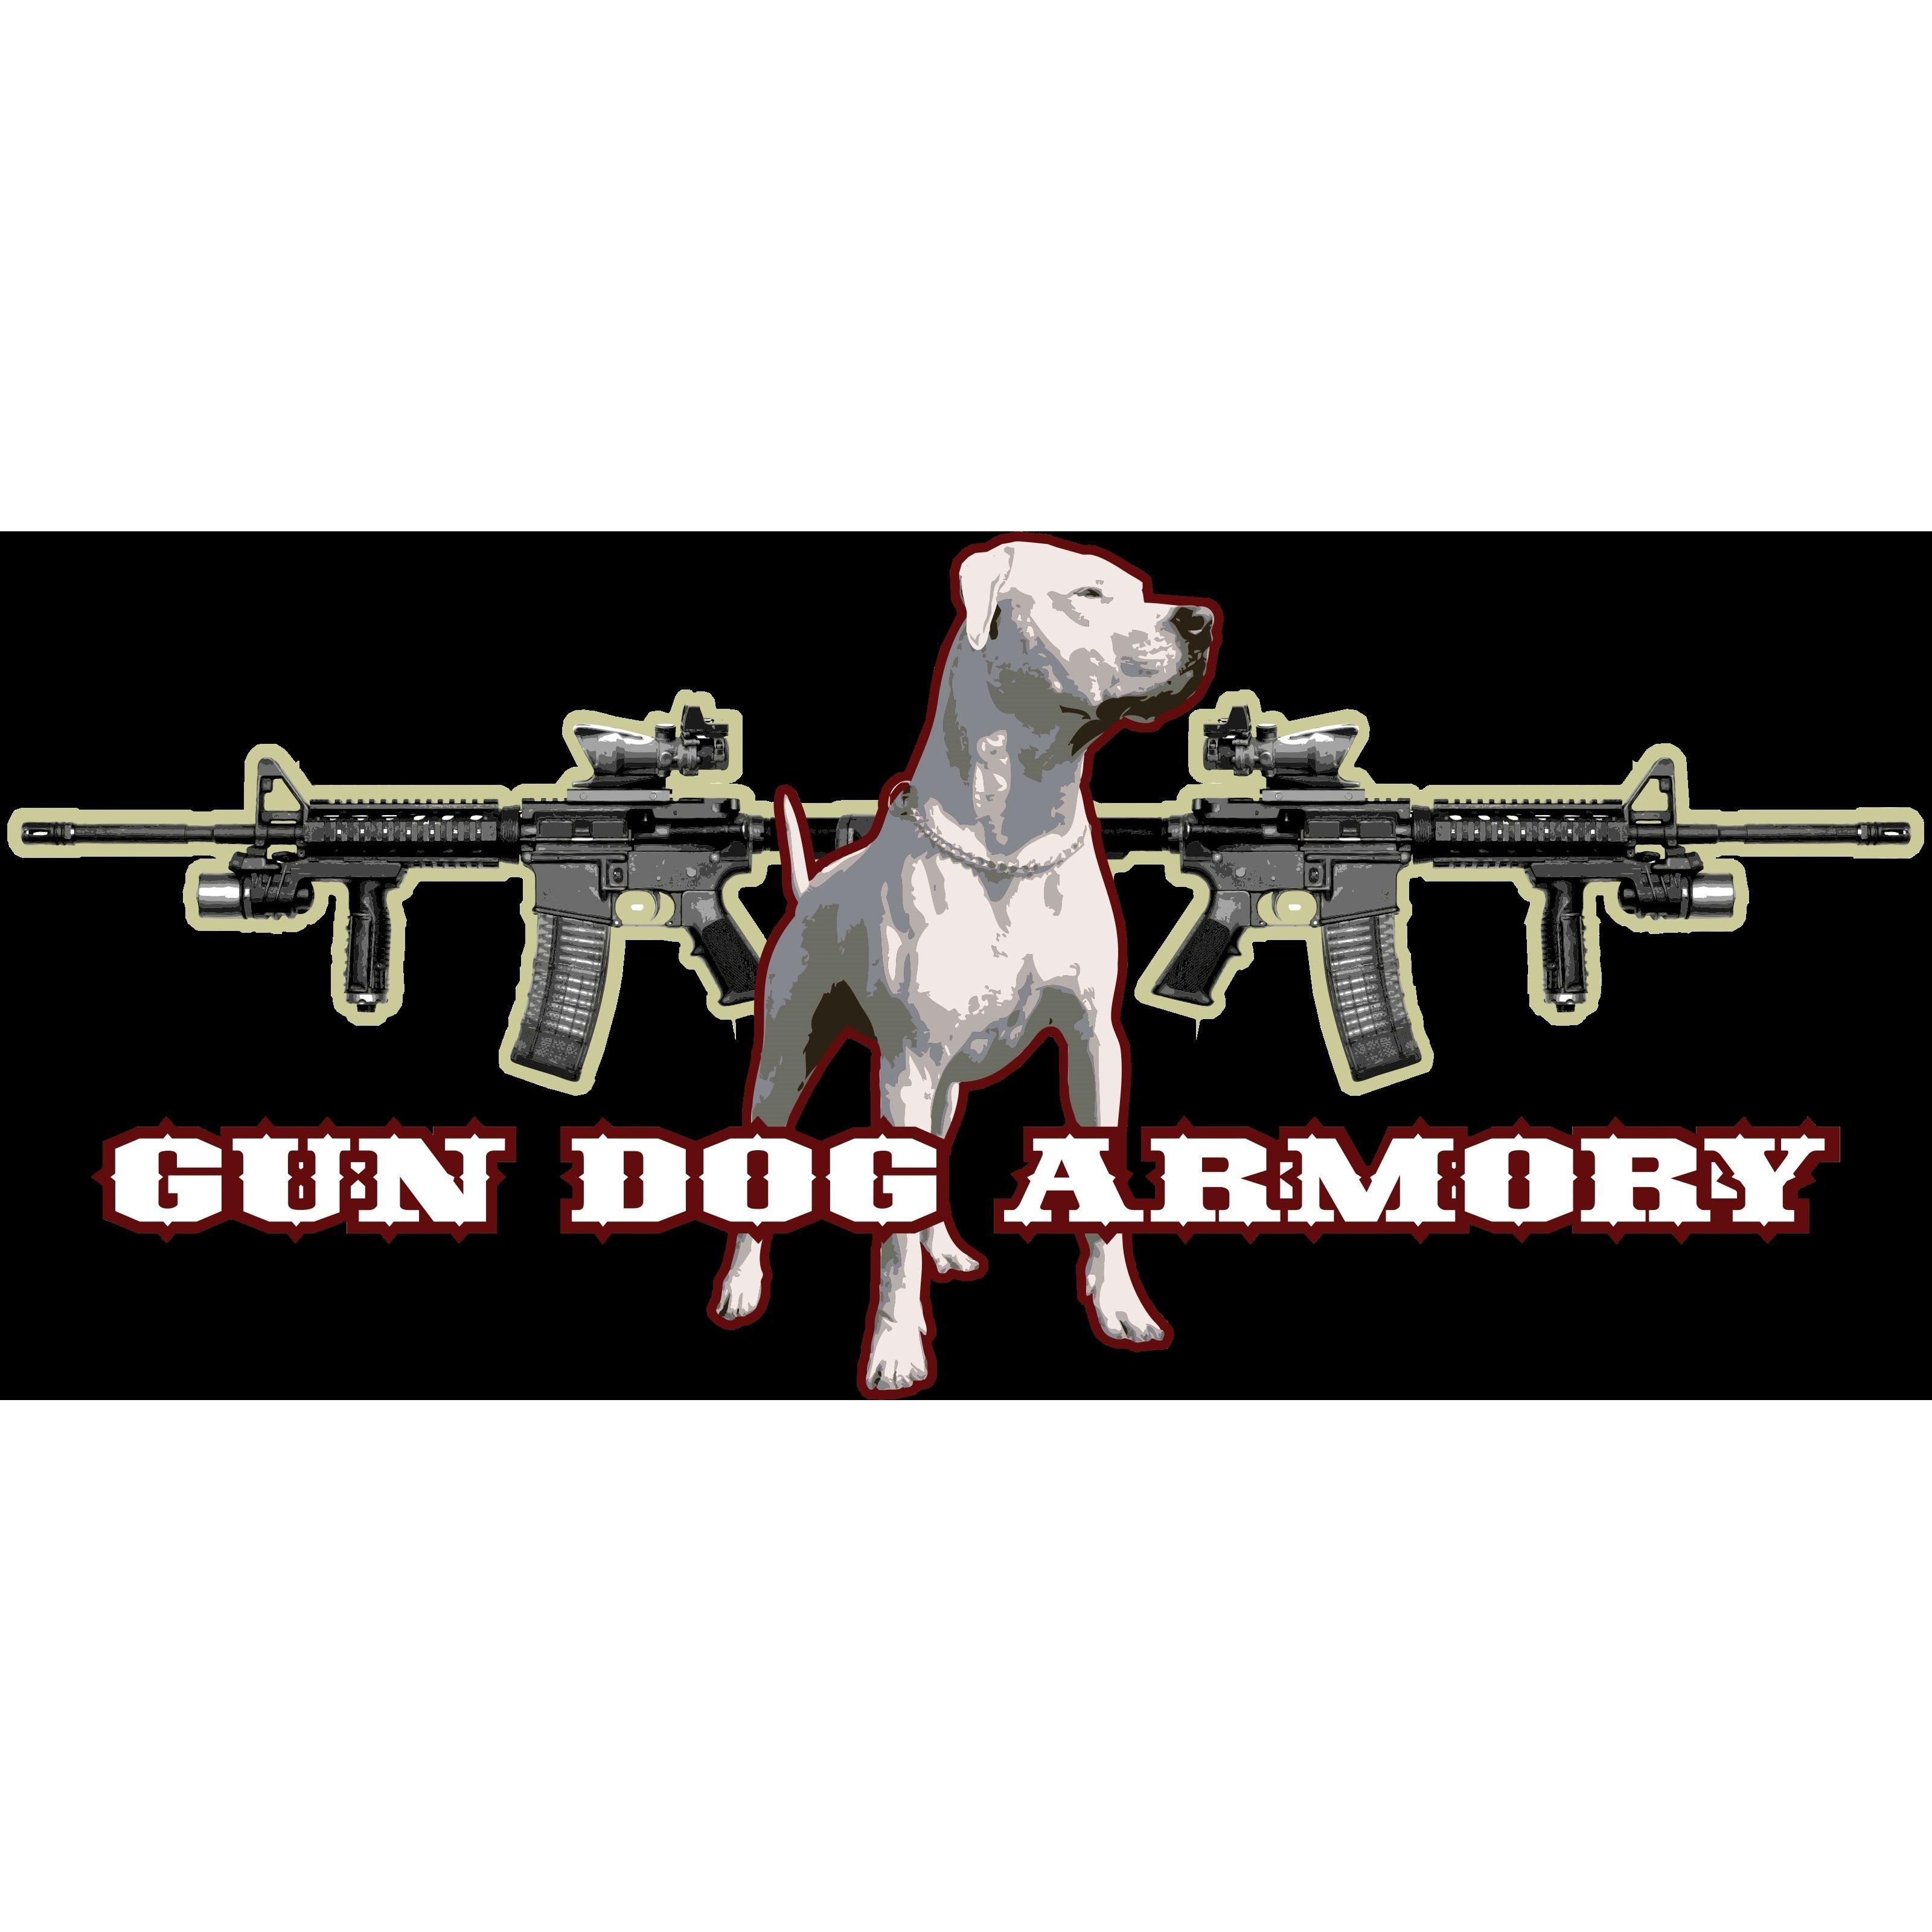 image of the Gun Dog Armory